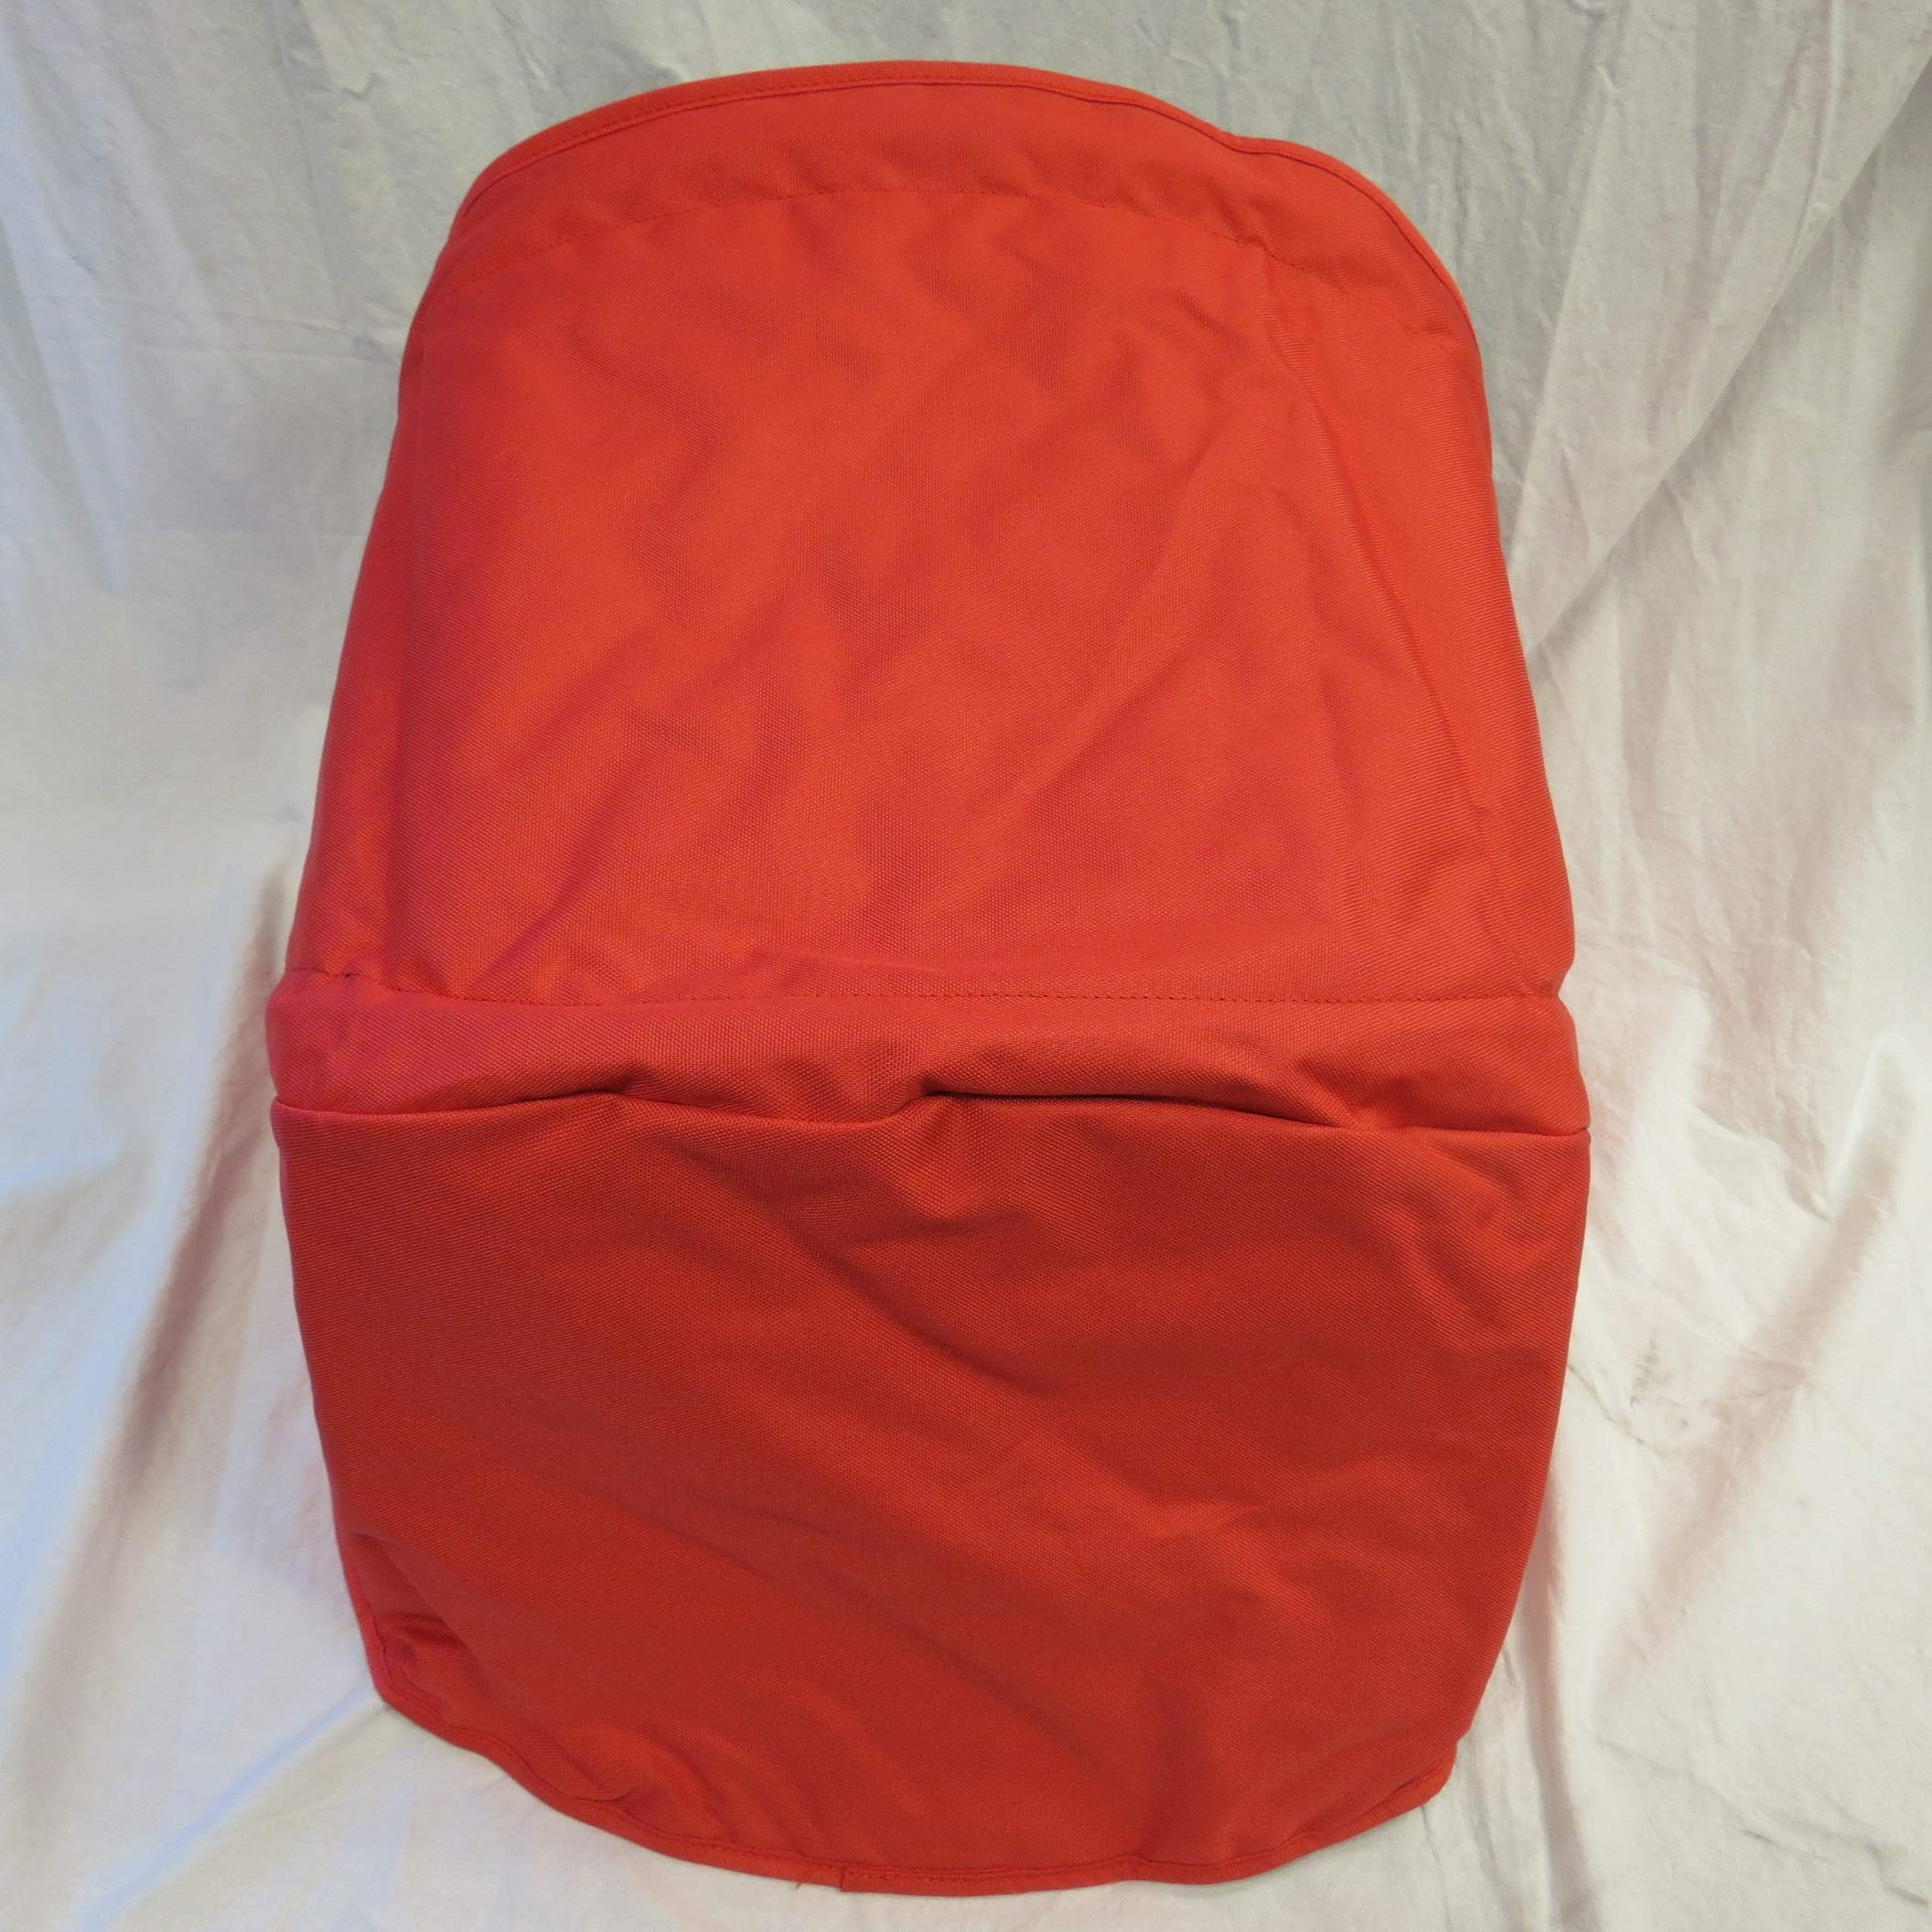 Red Sun Shade Canopy Hood Cover Umbrella for Bugaboo Cameleon 1, 2, 3, Frog Baby Child Strollers